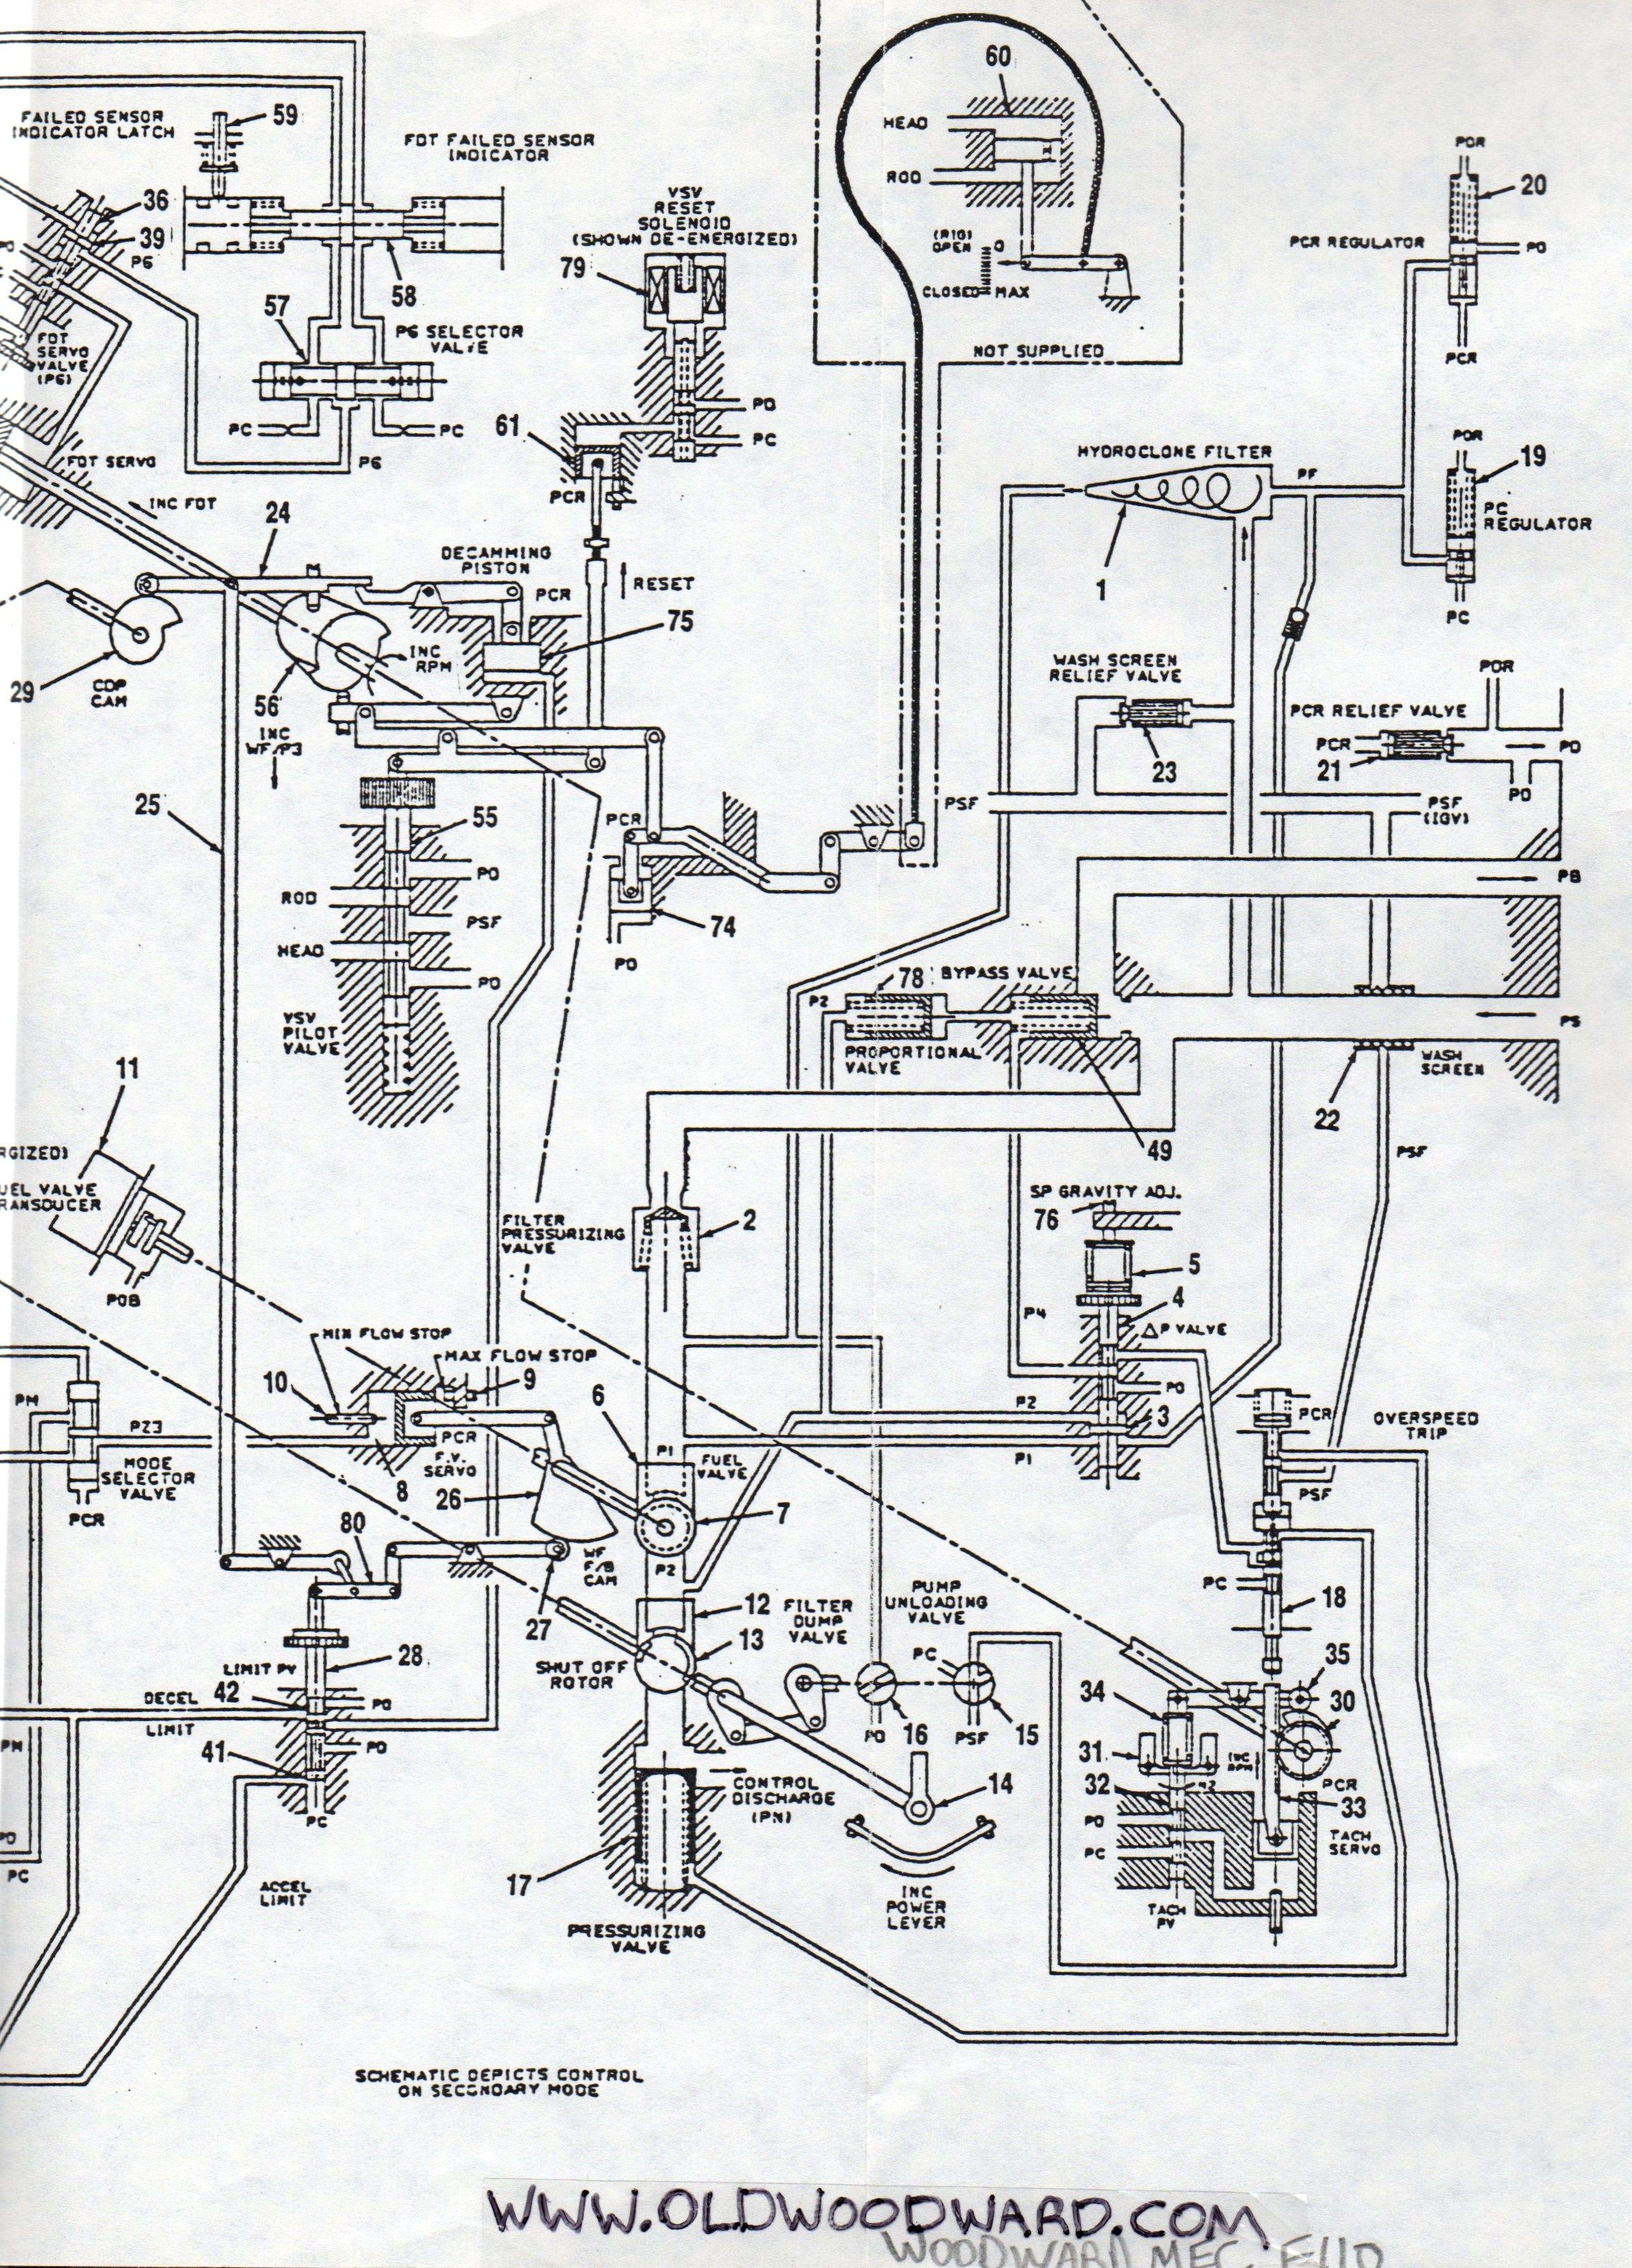 8cc7e46a8bcc8e88a7ba568f40573744 woodward governor company's control system schematic for the jet v force plus wiring diagram at crackthecode.co